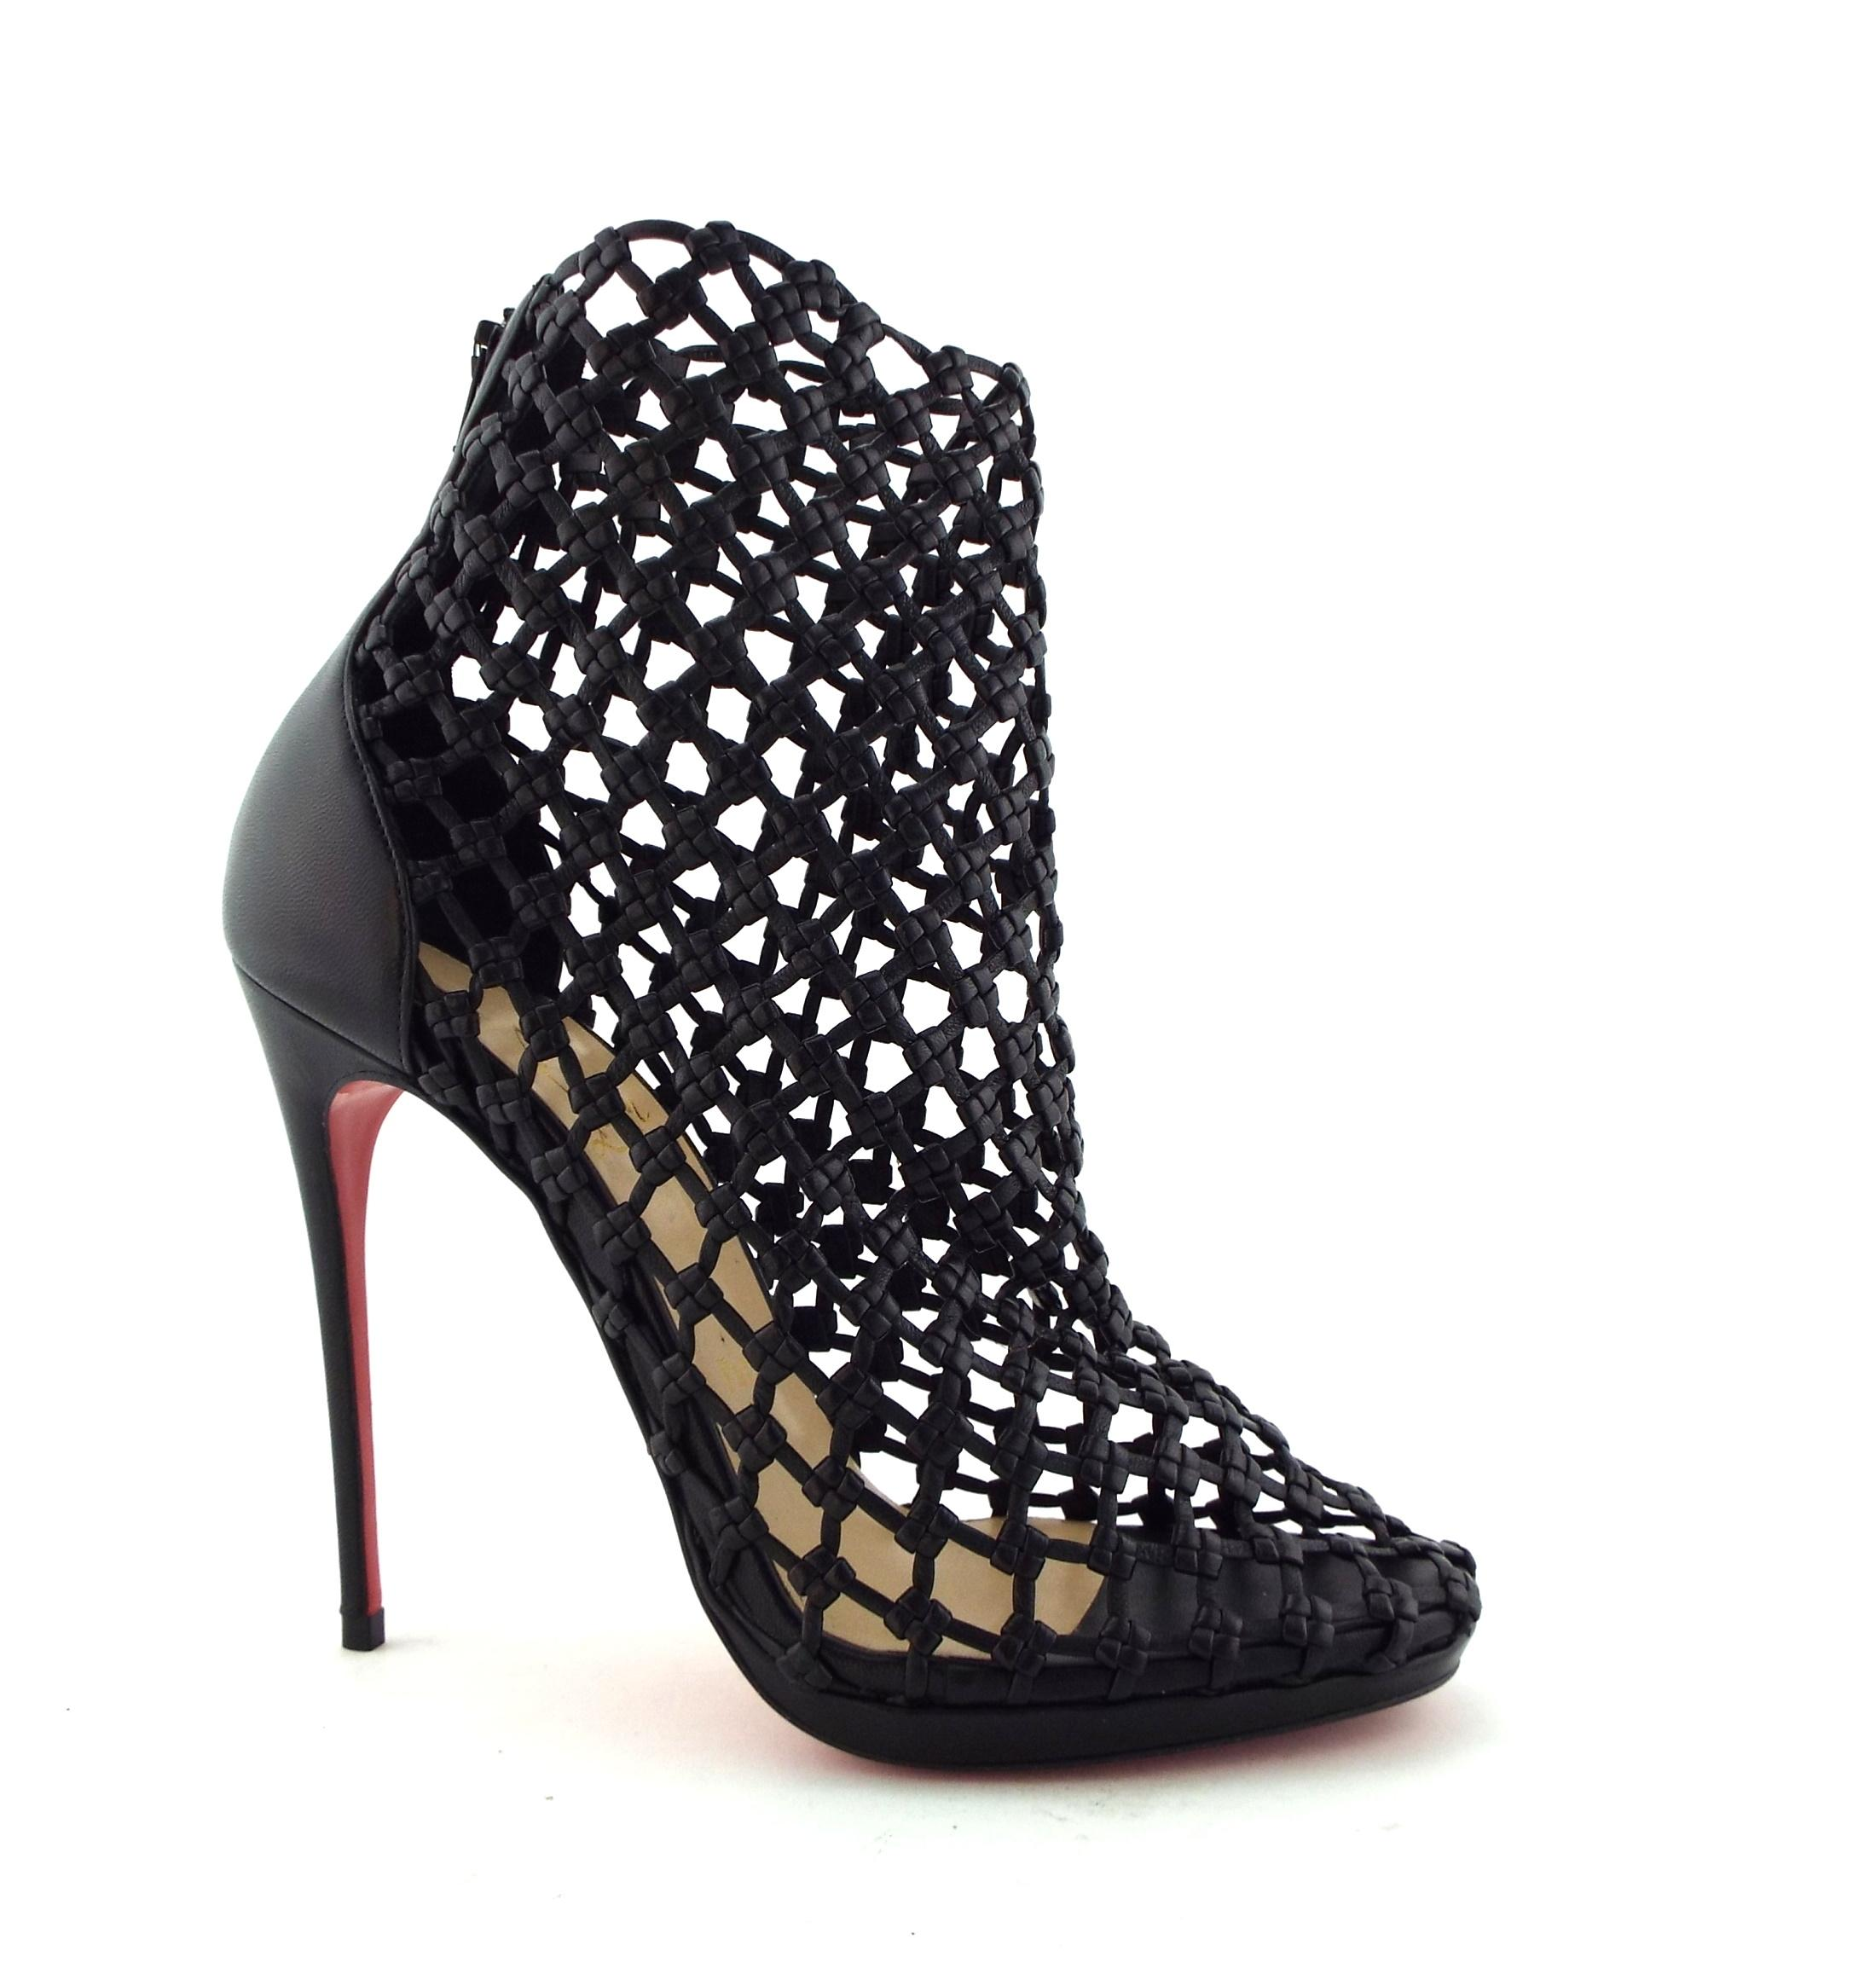 buy popular eaed3 74c7f Christian Louboutin Black Woven Leather Caged Ankle Boots ...